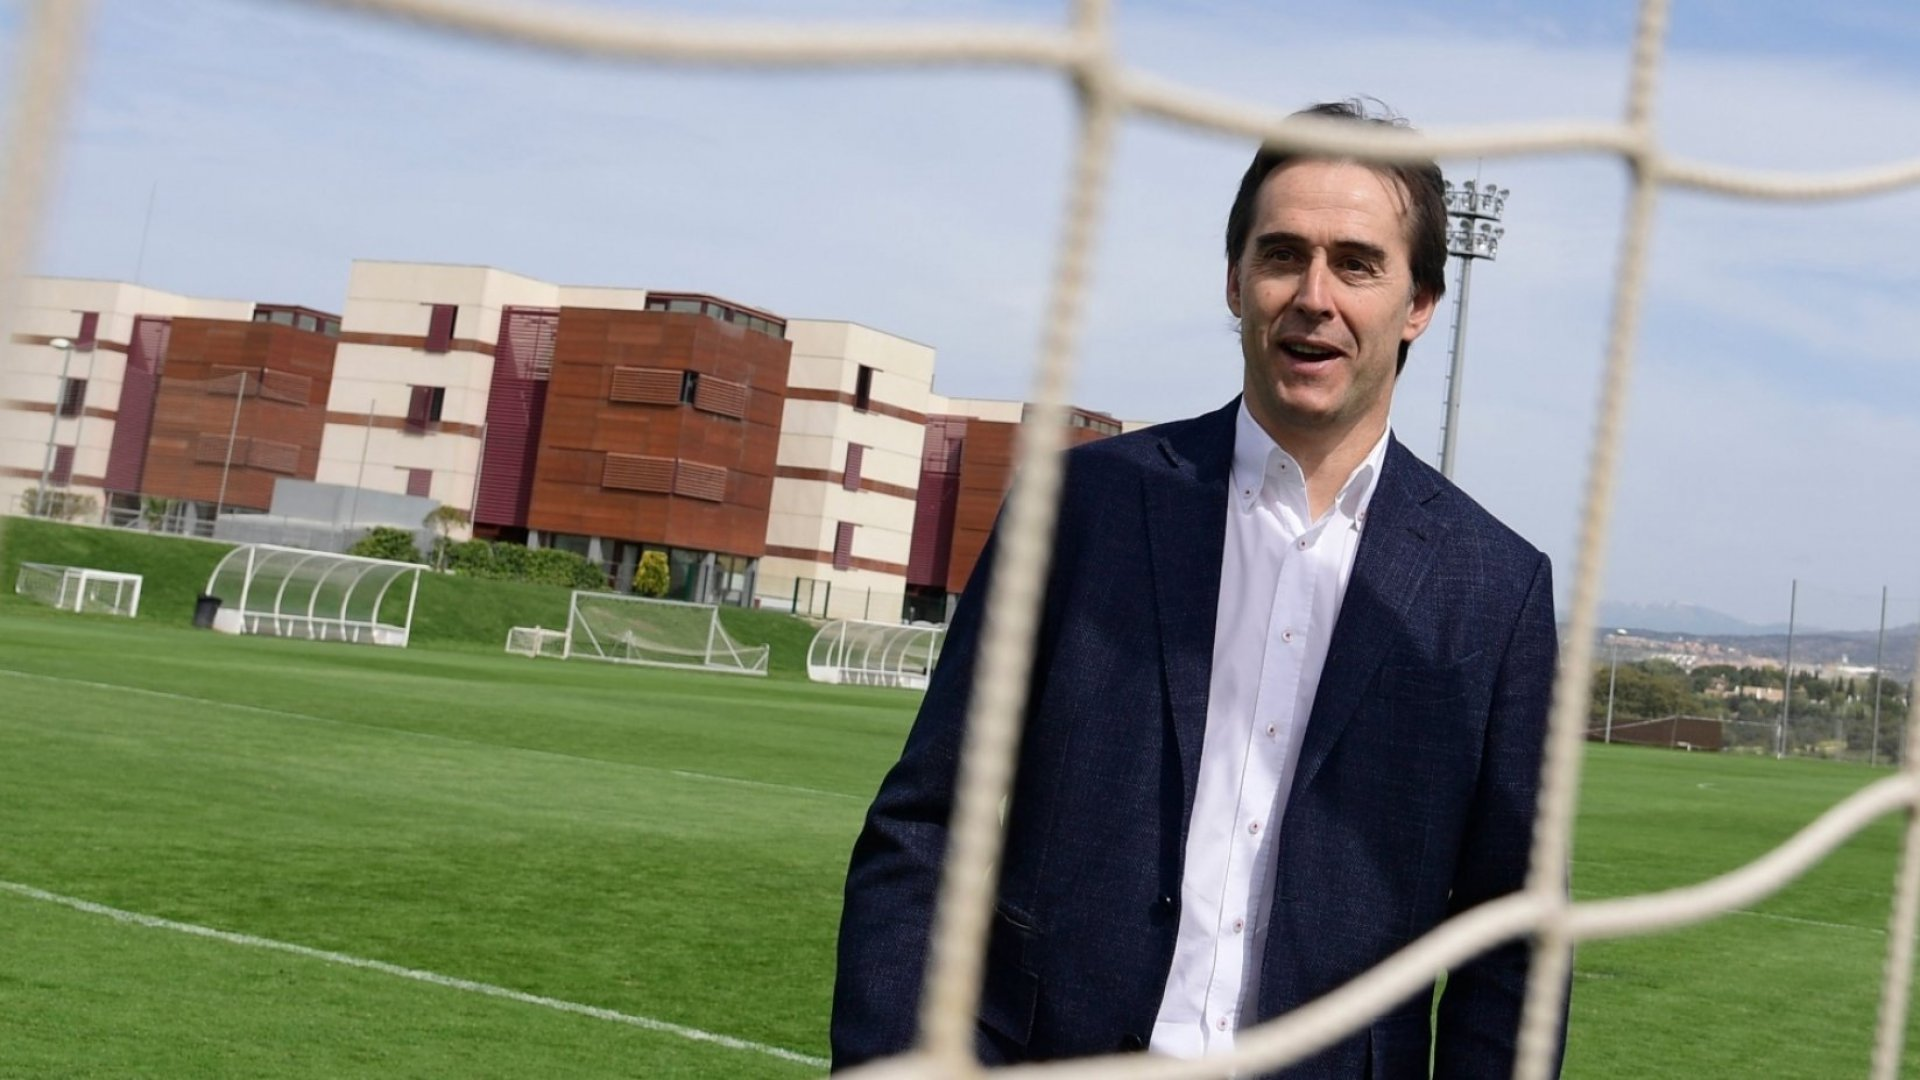 Former Spain team coach Julen Lopetegui